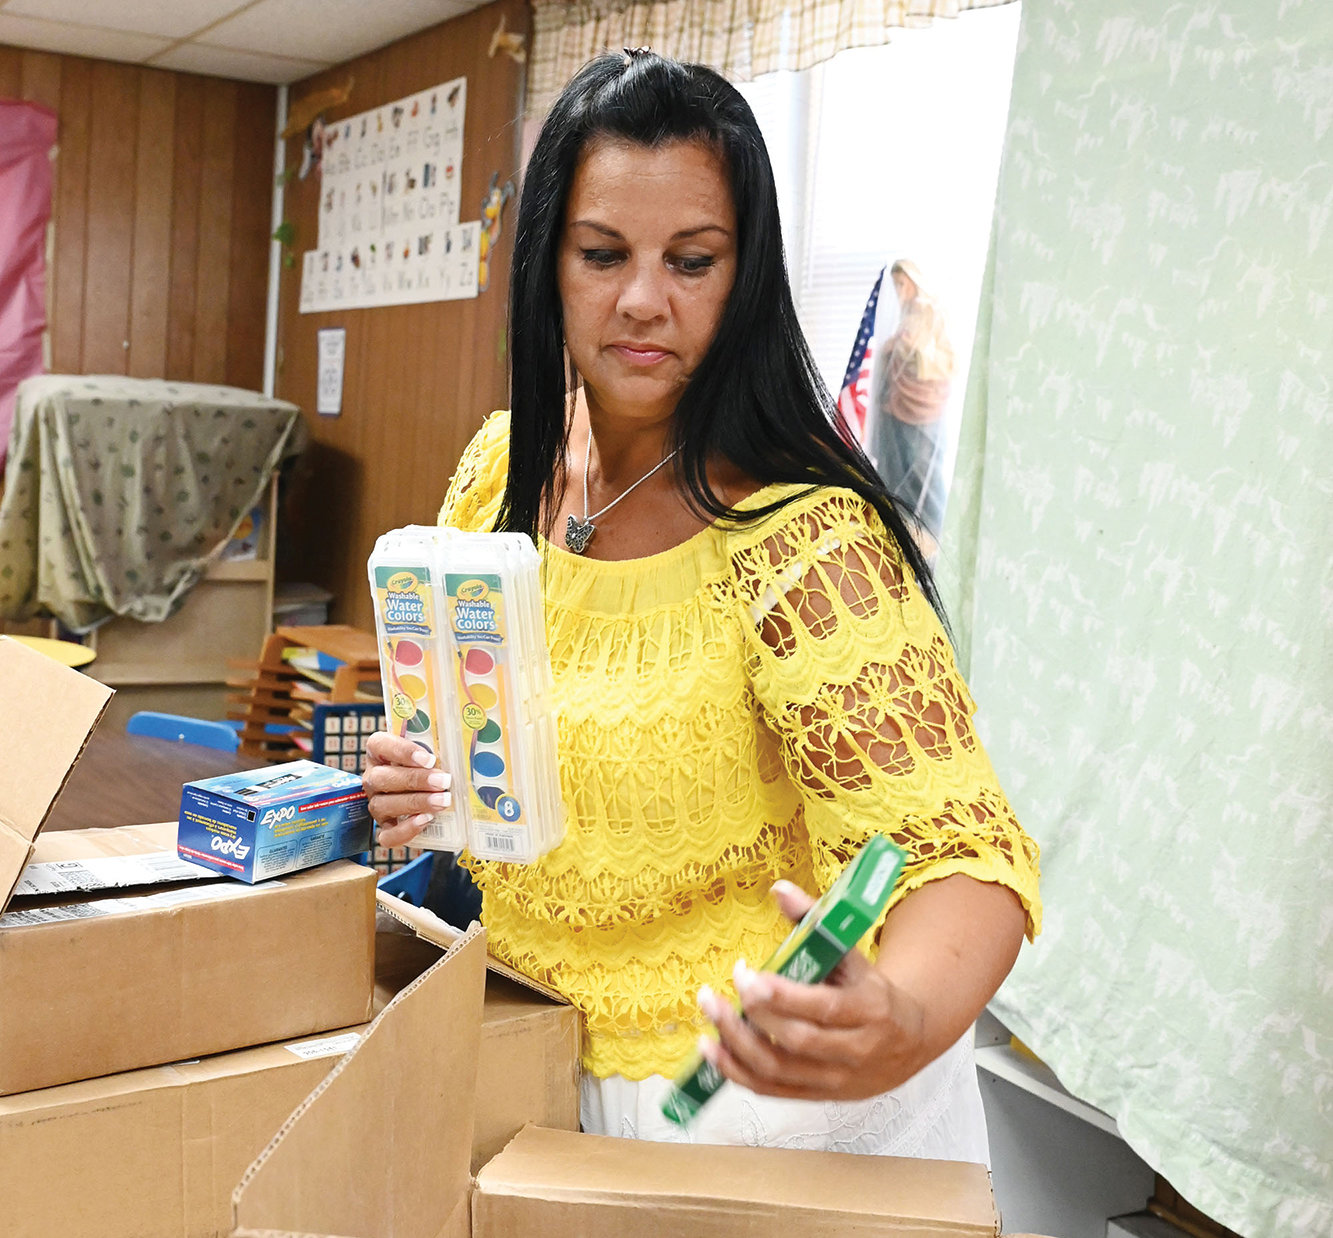 Linda Ballew, a kindergarten teacher at Blessed Sacrament School on Staten Island, unpacks boxes of school supplies as she sets up her classroom for the new school year.